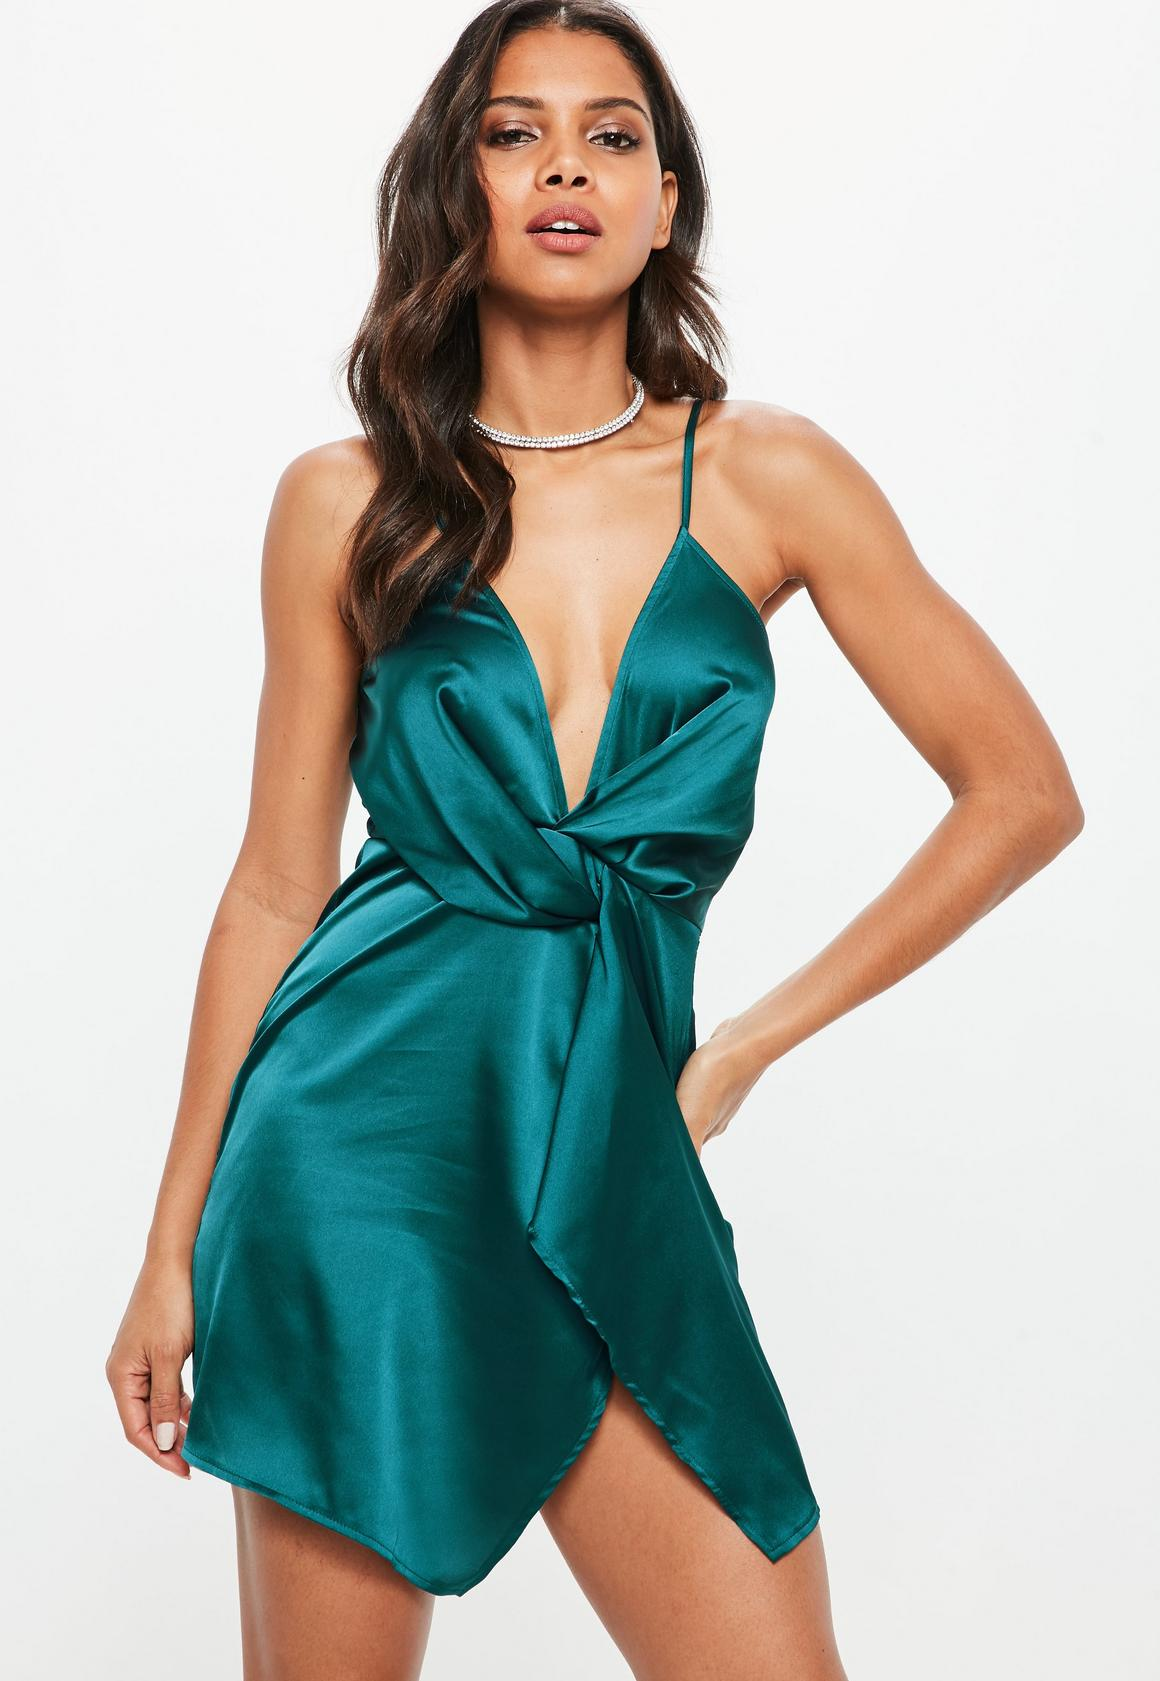 Teal Satin Strappy Wrap Shift Dress   Missguided